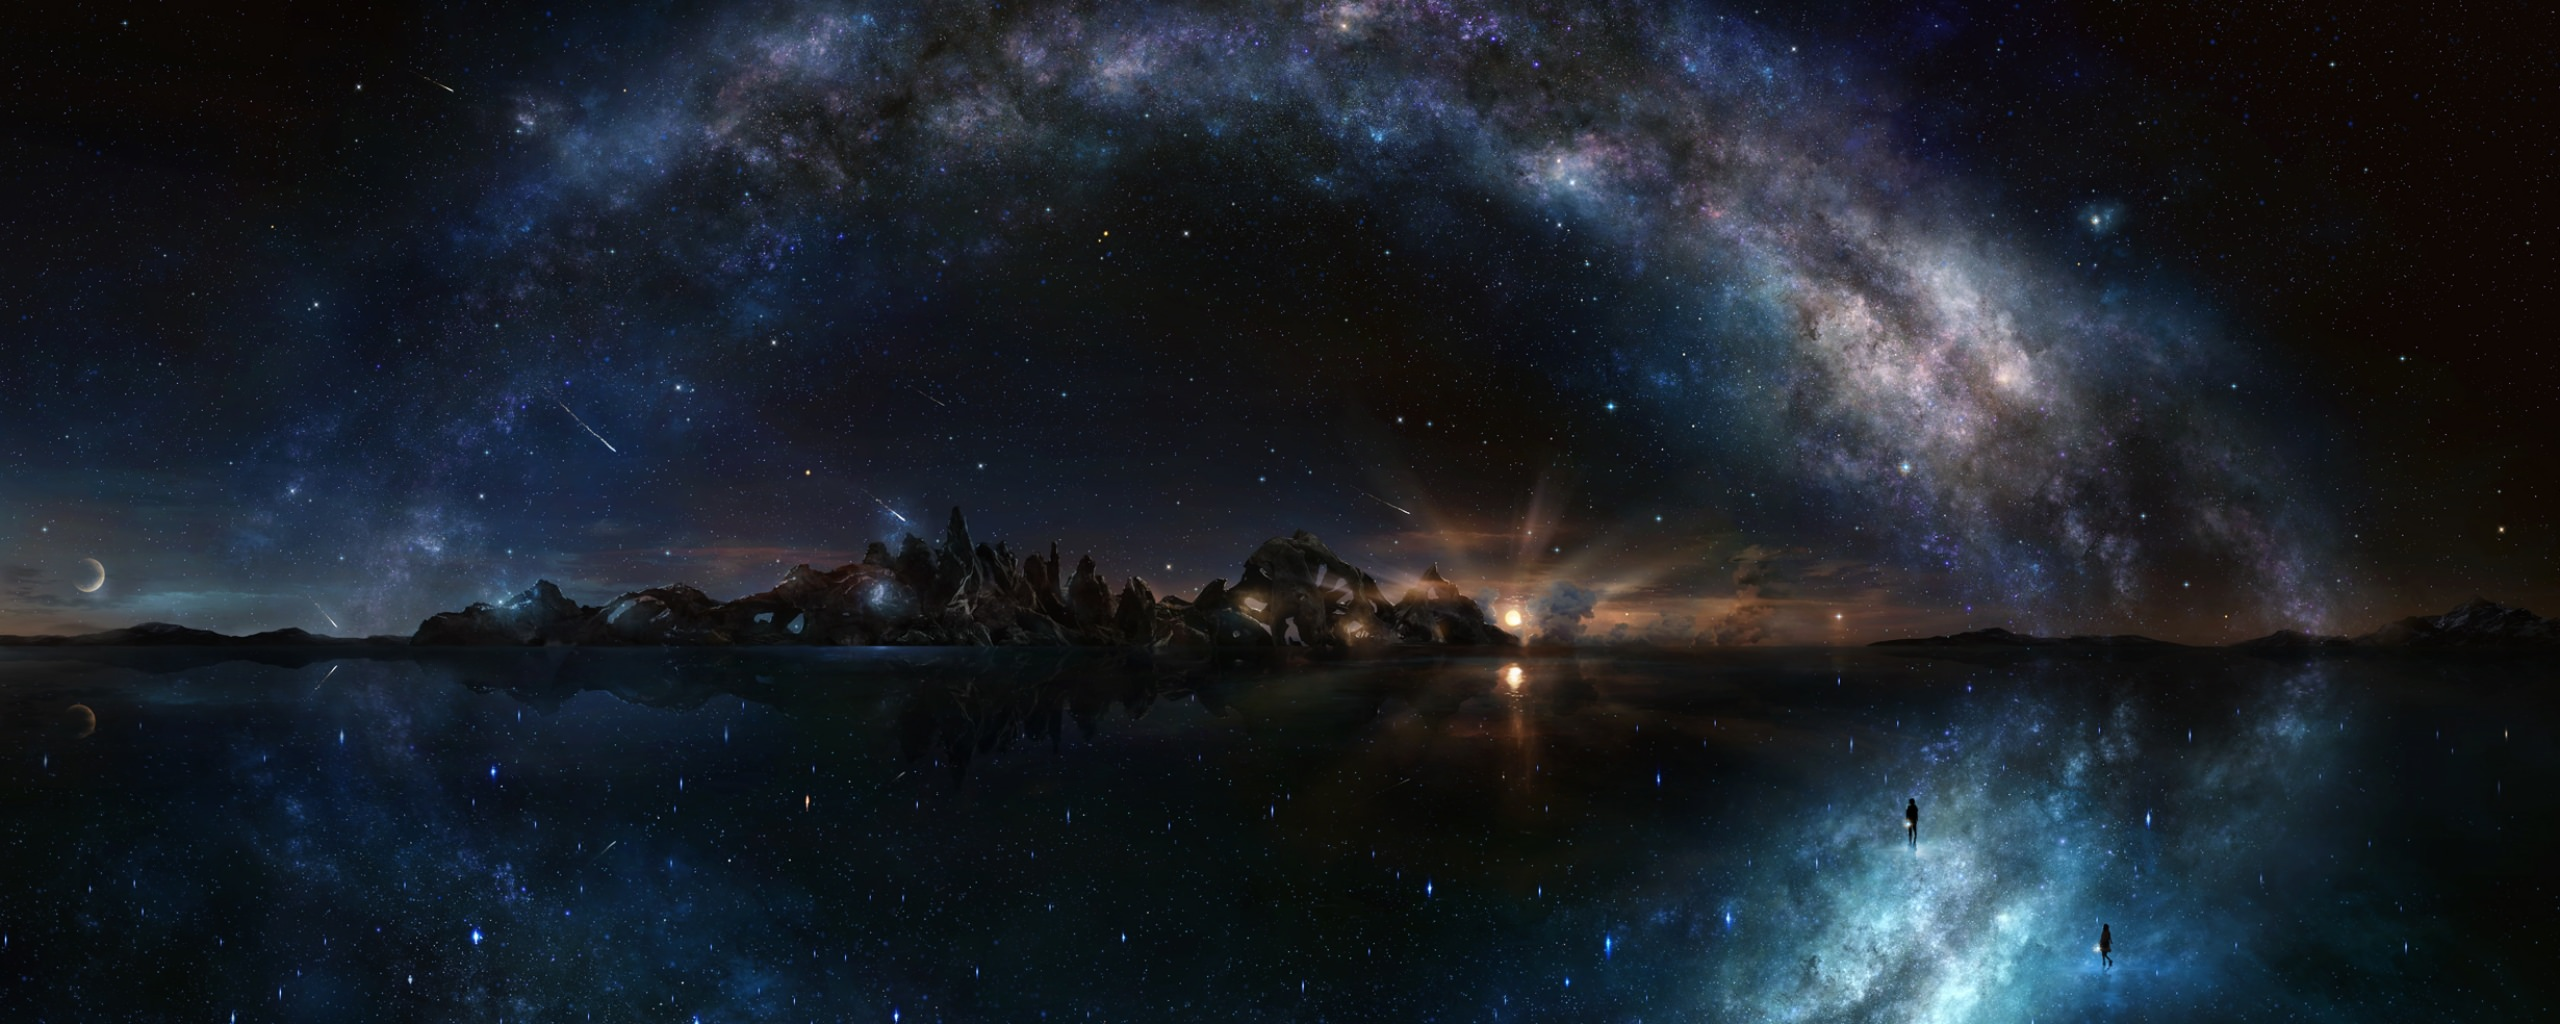 4k dual monitor wallpaper,sky,nature,outer space,atmosphere,night